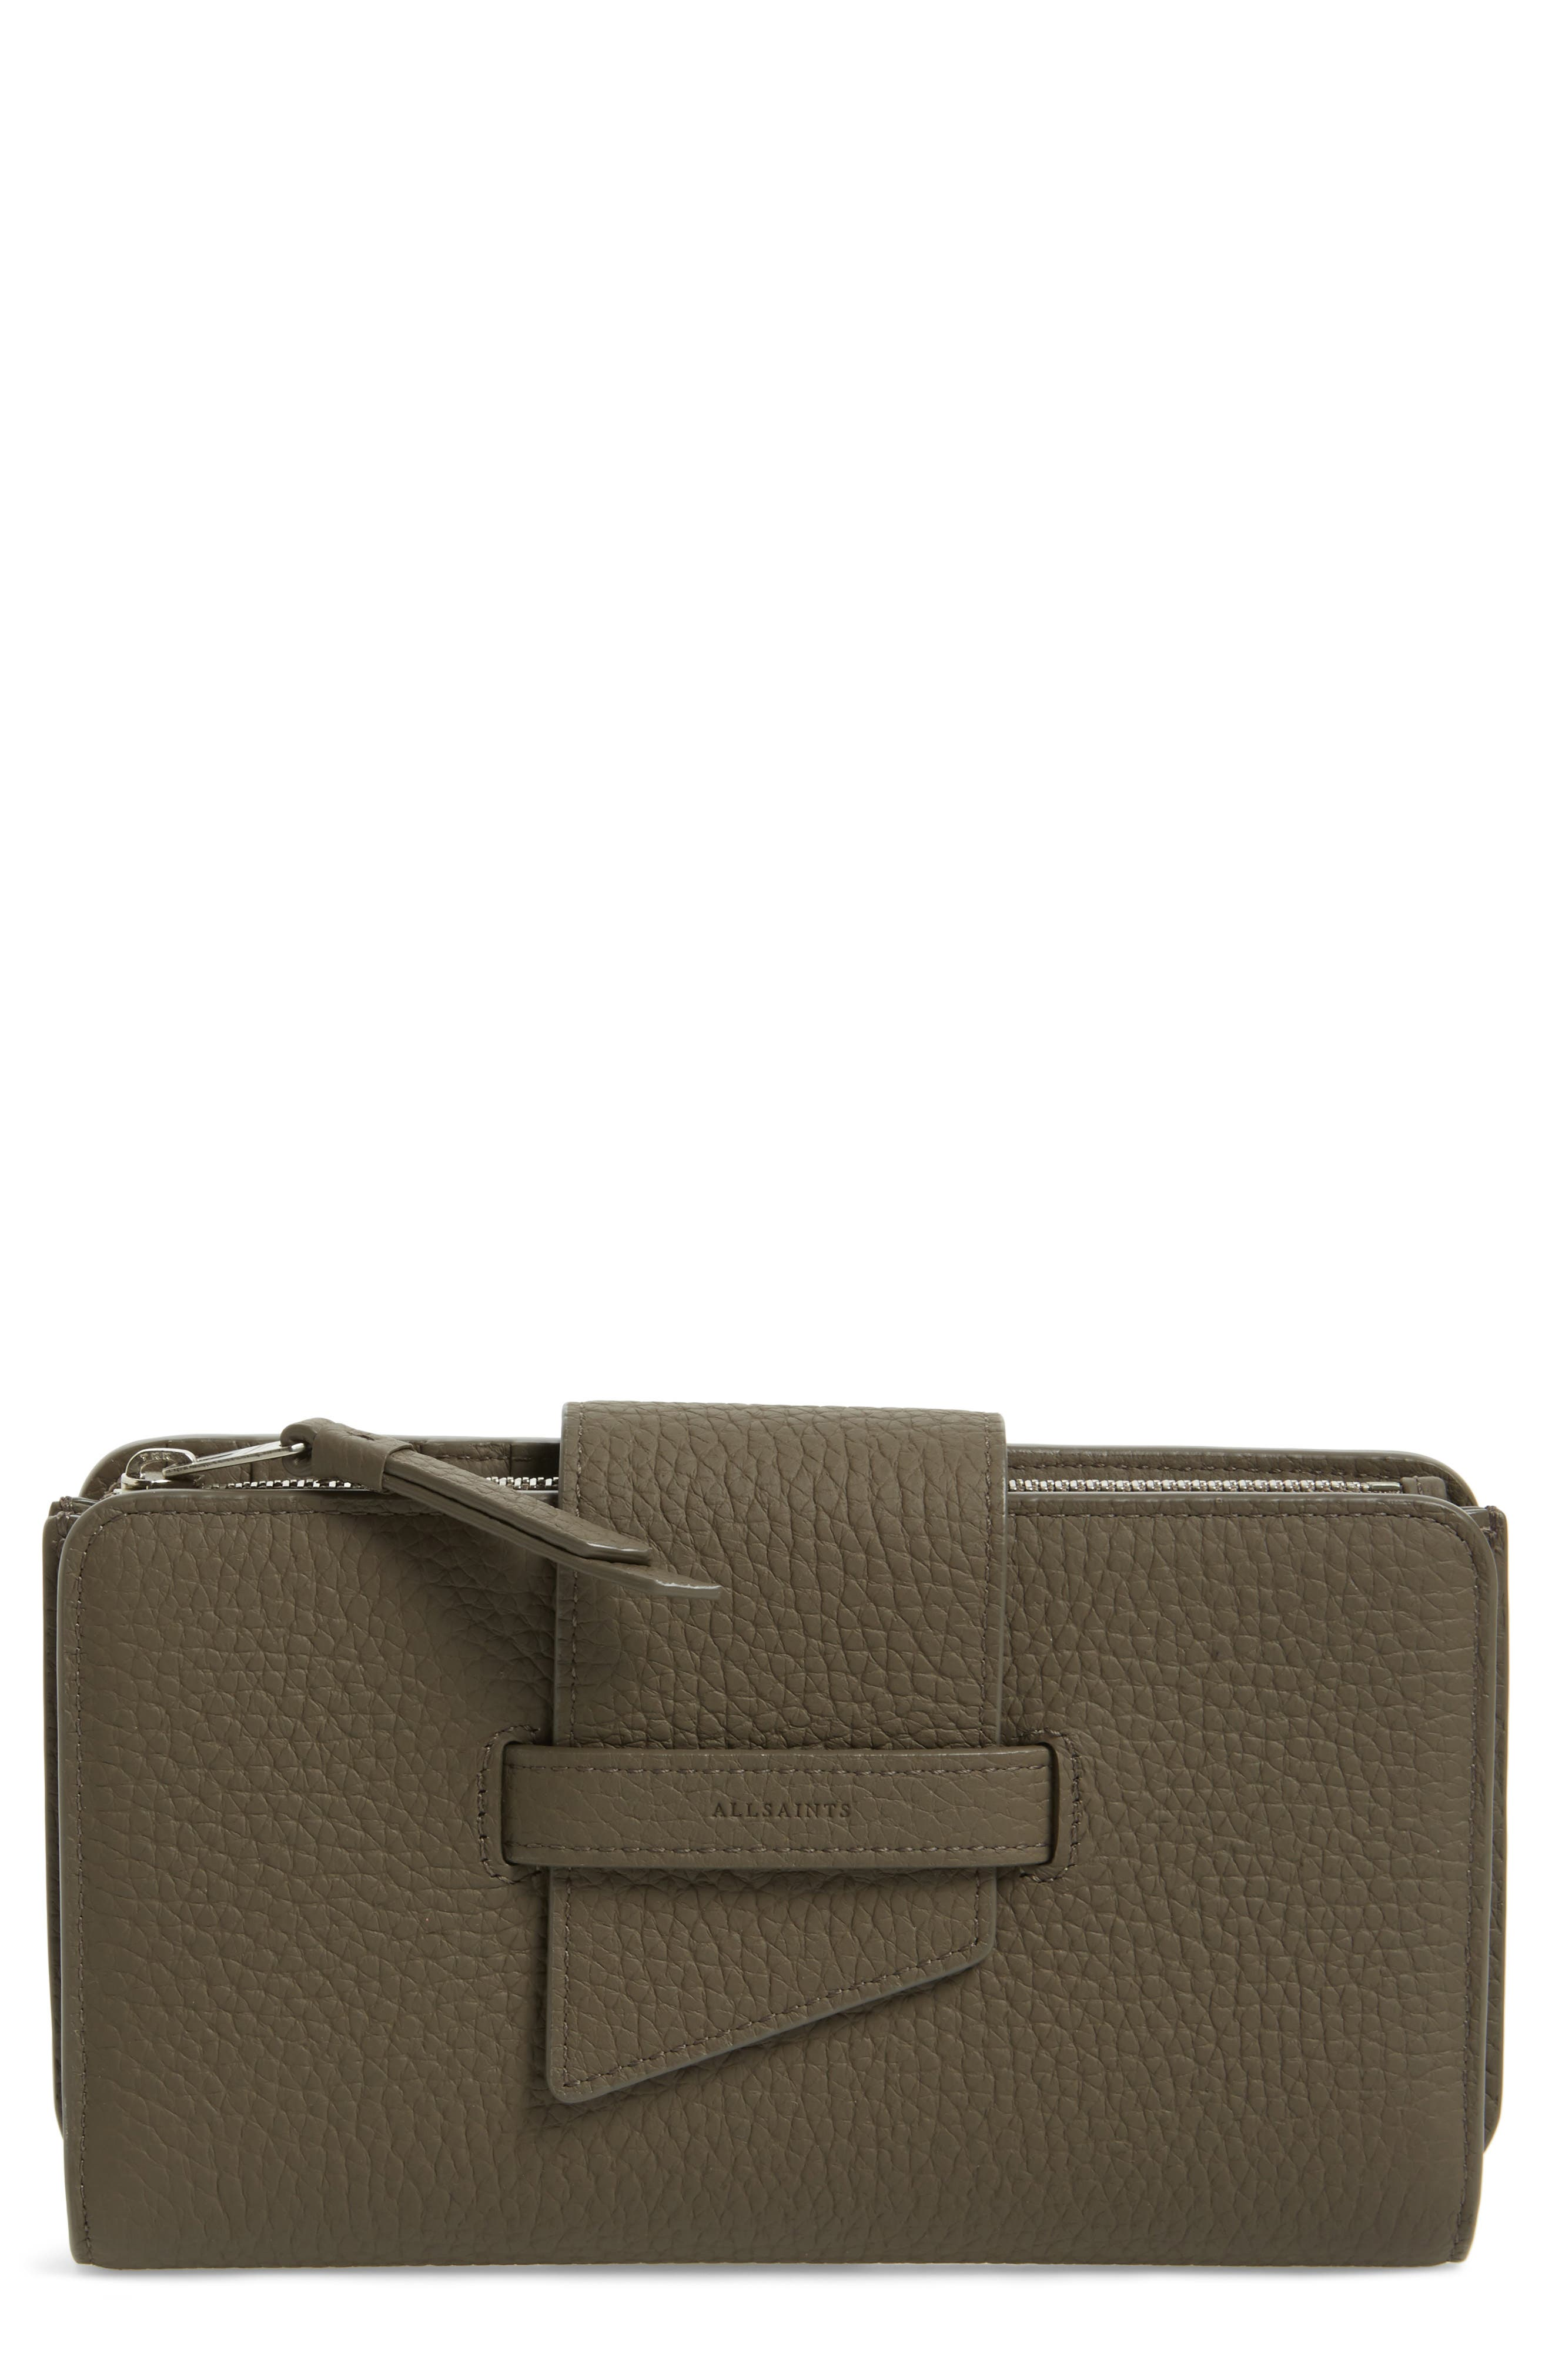 Alternate Image 1 Selected - ALLSAINTS Ray Leather Wallet